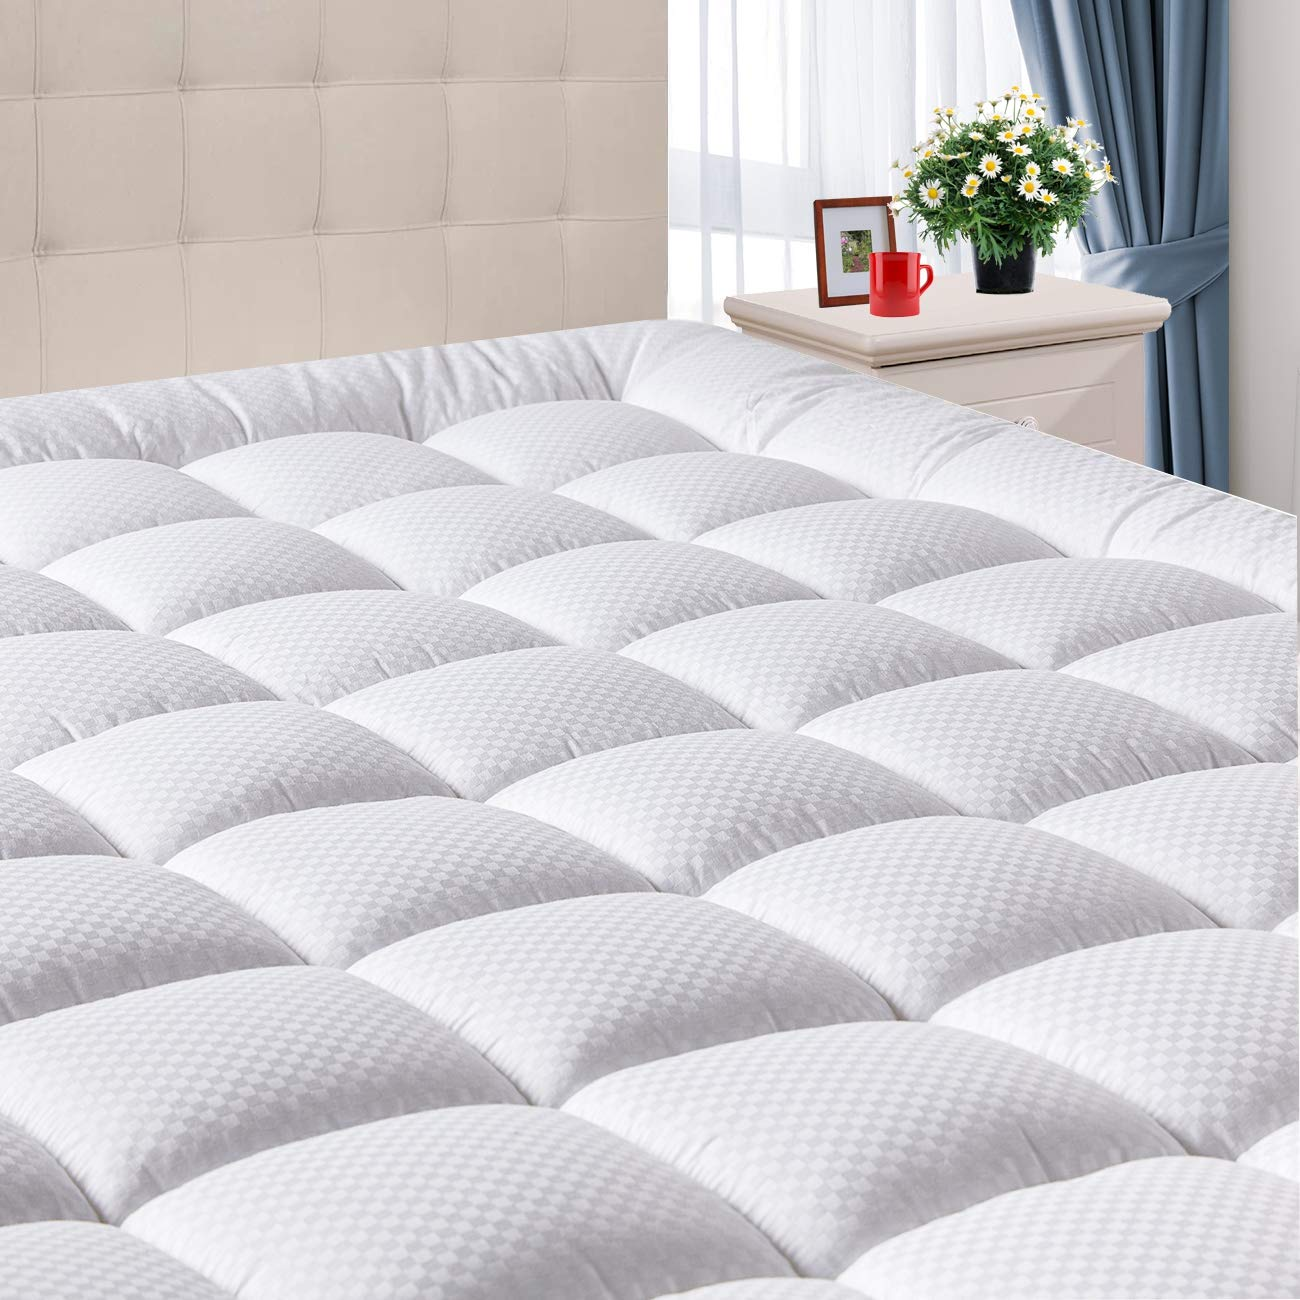 Domicare Queen Mattress Pad Cover with Deep Pocket (8''-21'') - Cooling Pillowtop Cotton Quilted Mattress Pad - Down Alternative Hypoallergenic Fitted Mattress Topper